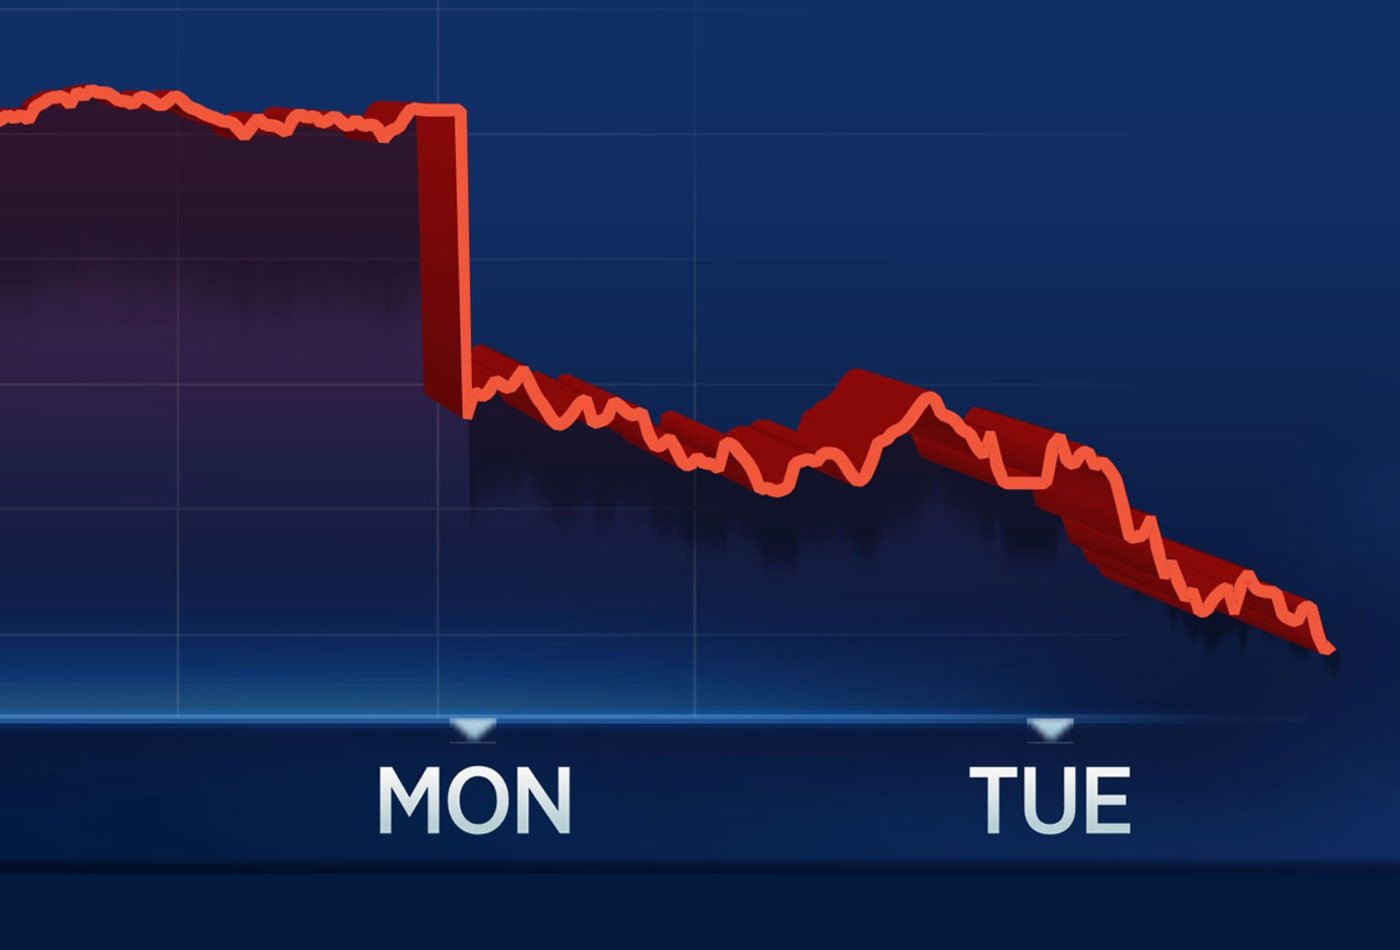 Dow plunges 1,000 points on coronavirus fears, 3.5% drop is worst in two years